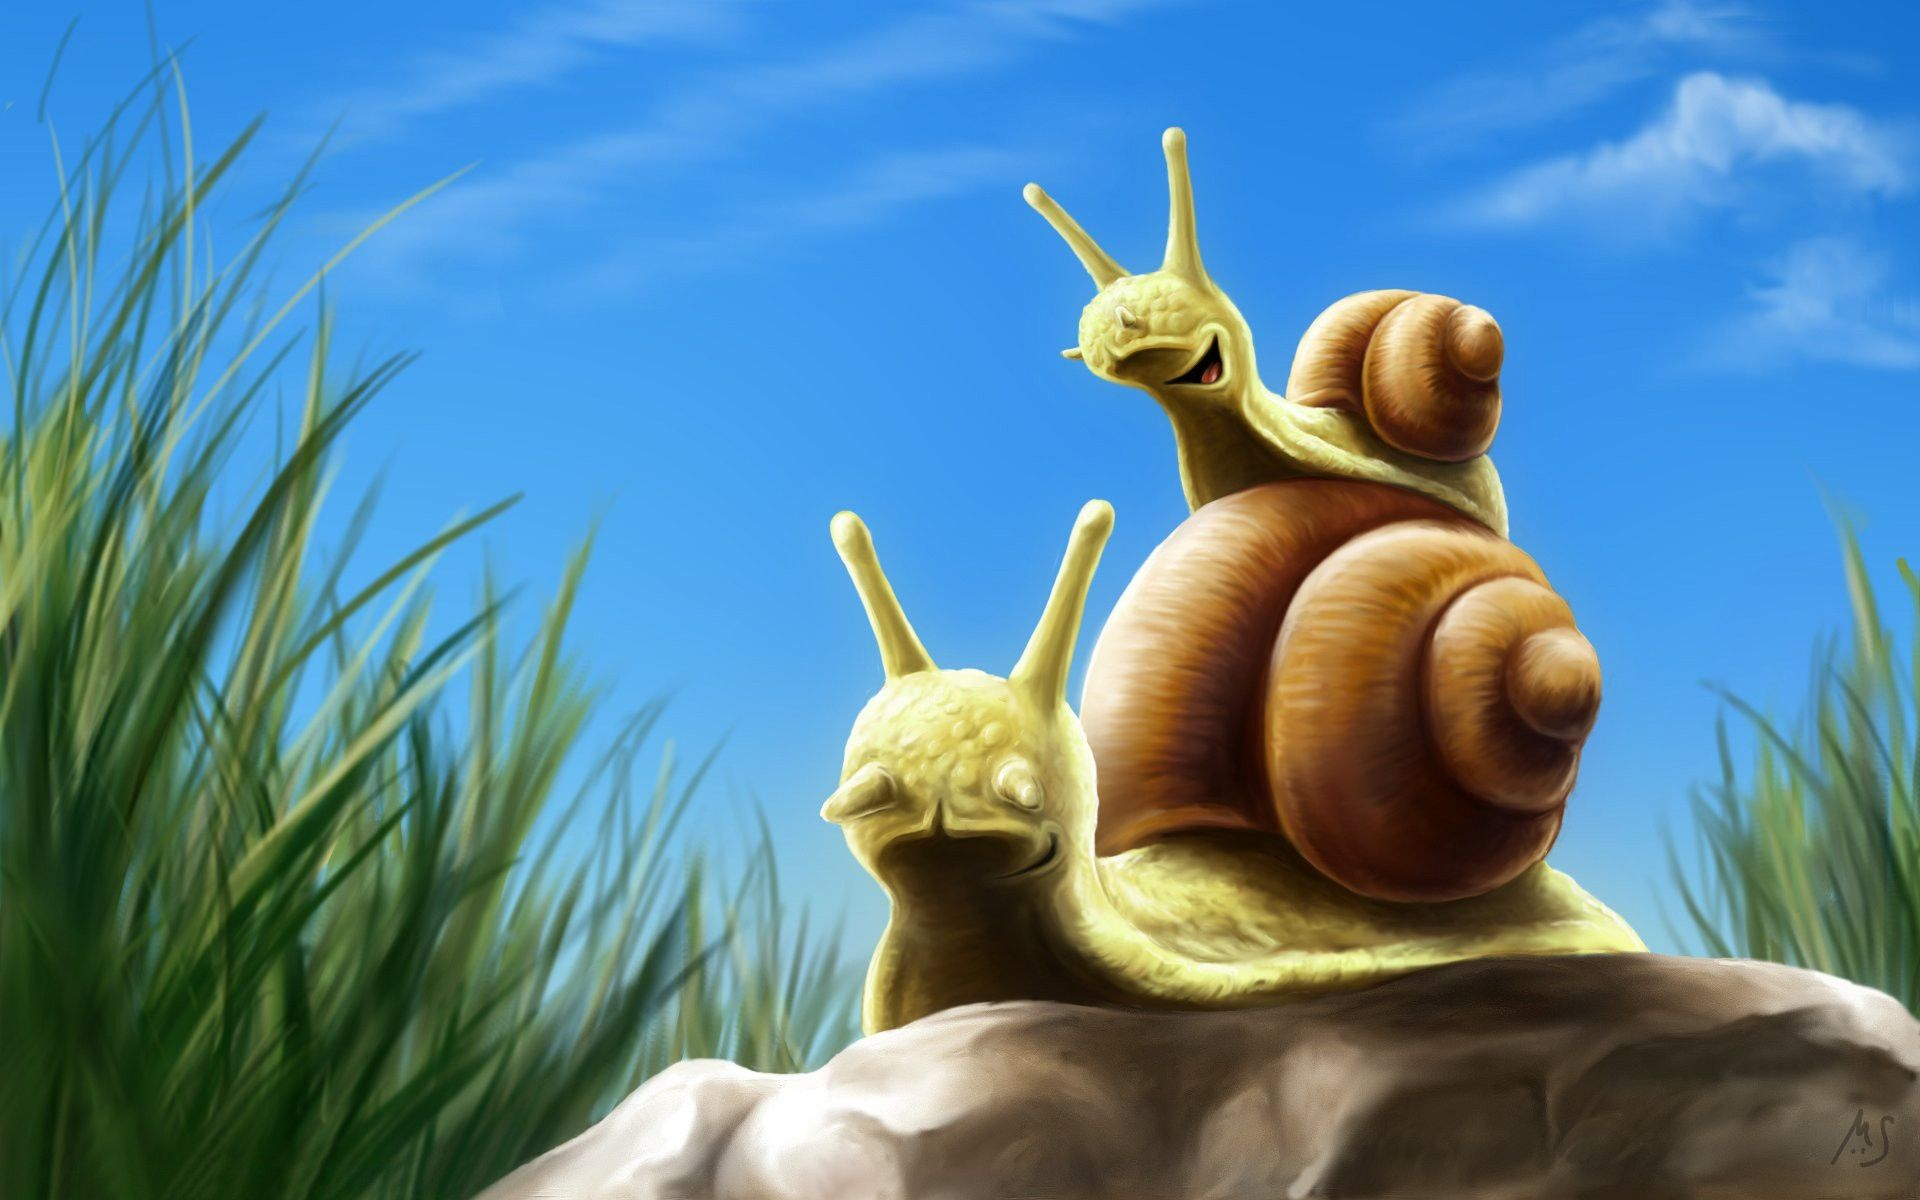 snails artwork 1920x1200 wallpapers High Quality Wallpapers,High